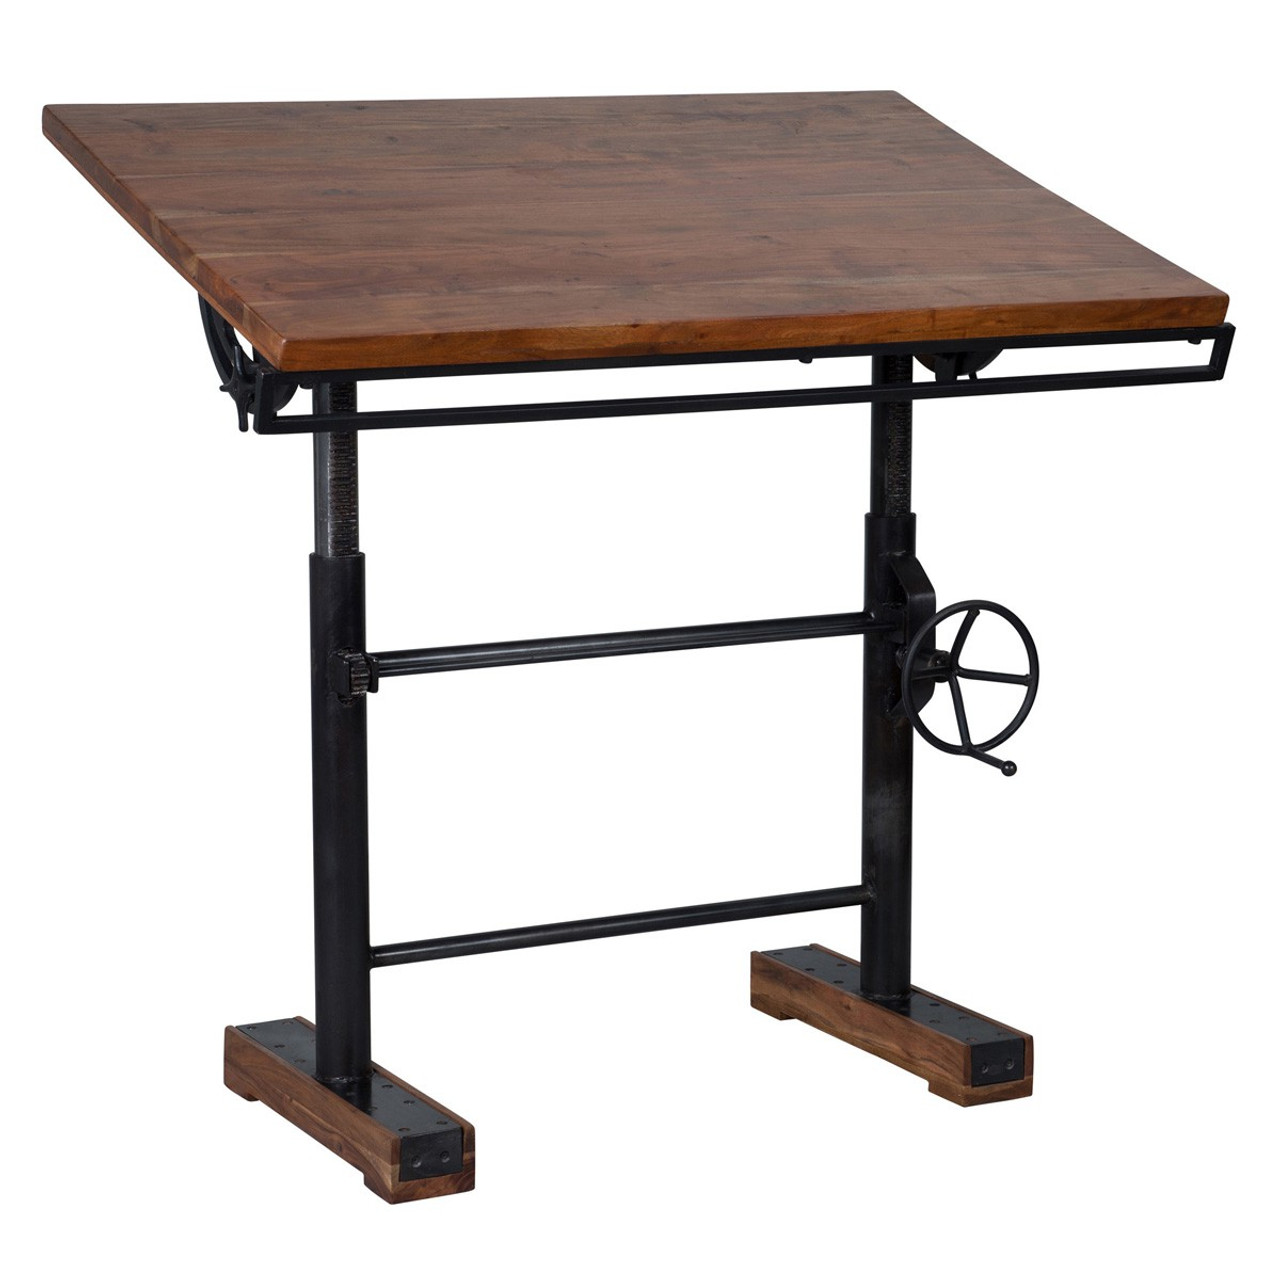 steampunk industrial crank adjustable standing desk 46 zin home rh zinhome com crank adjustable desk diy crank adjustable desk base with casters